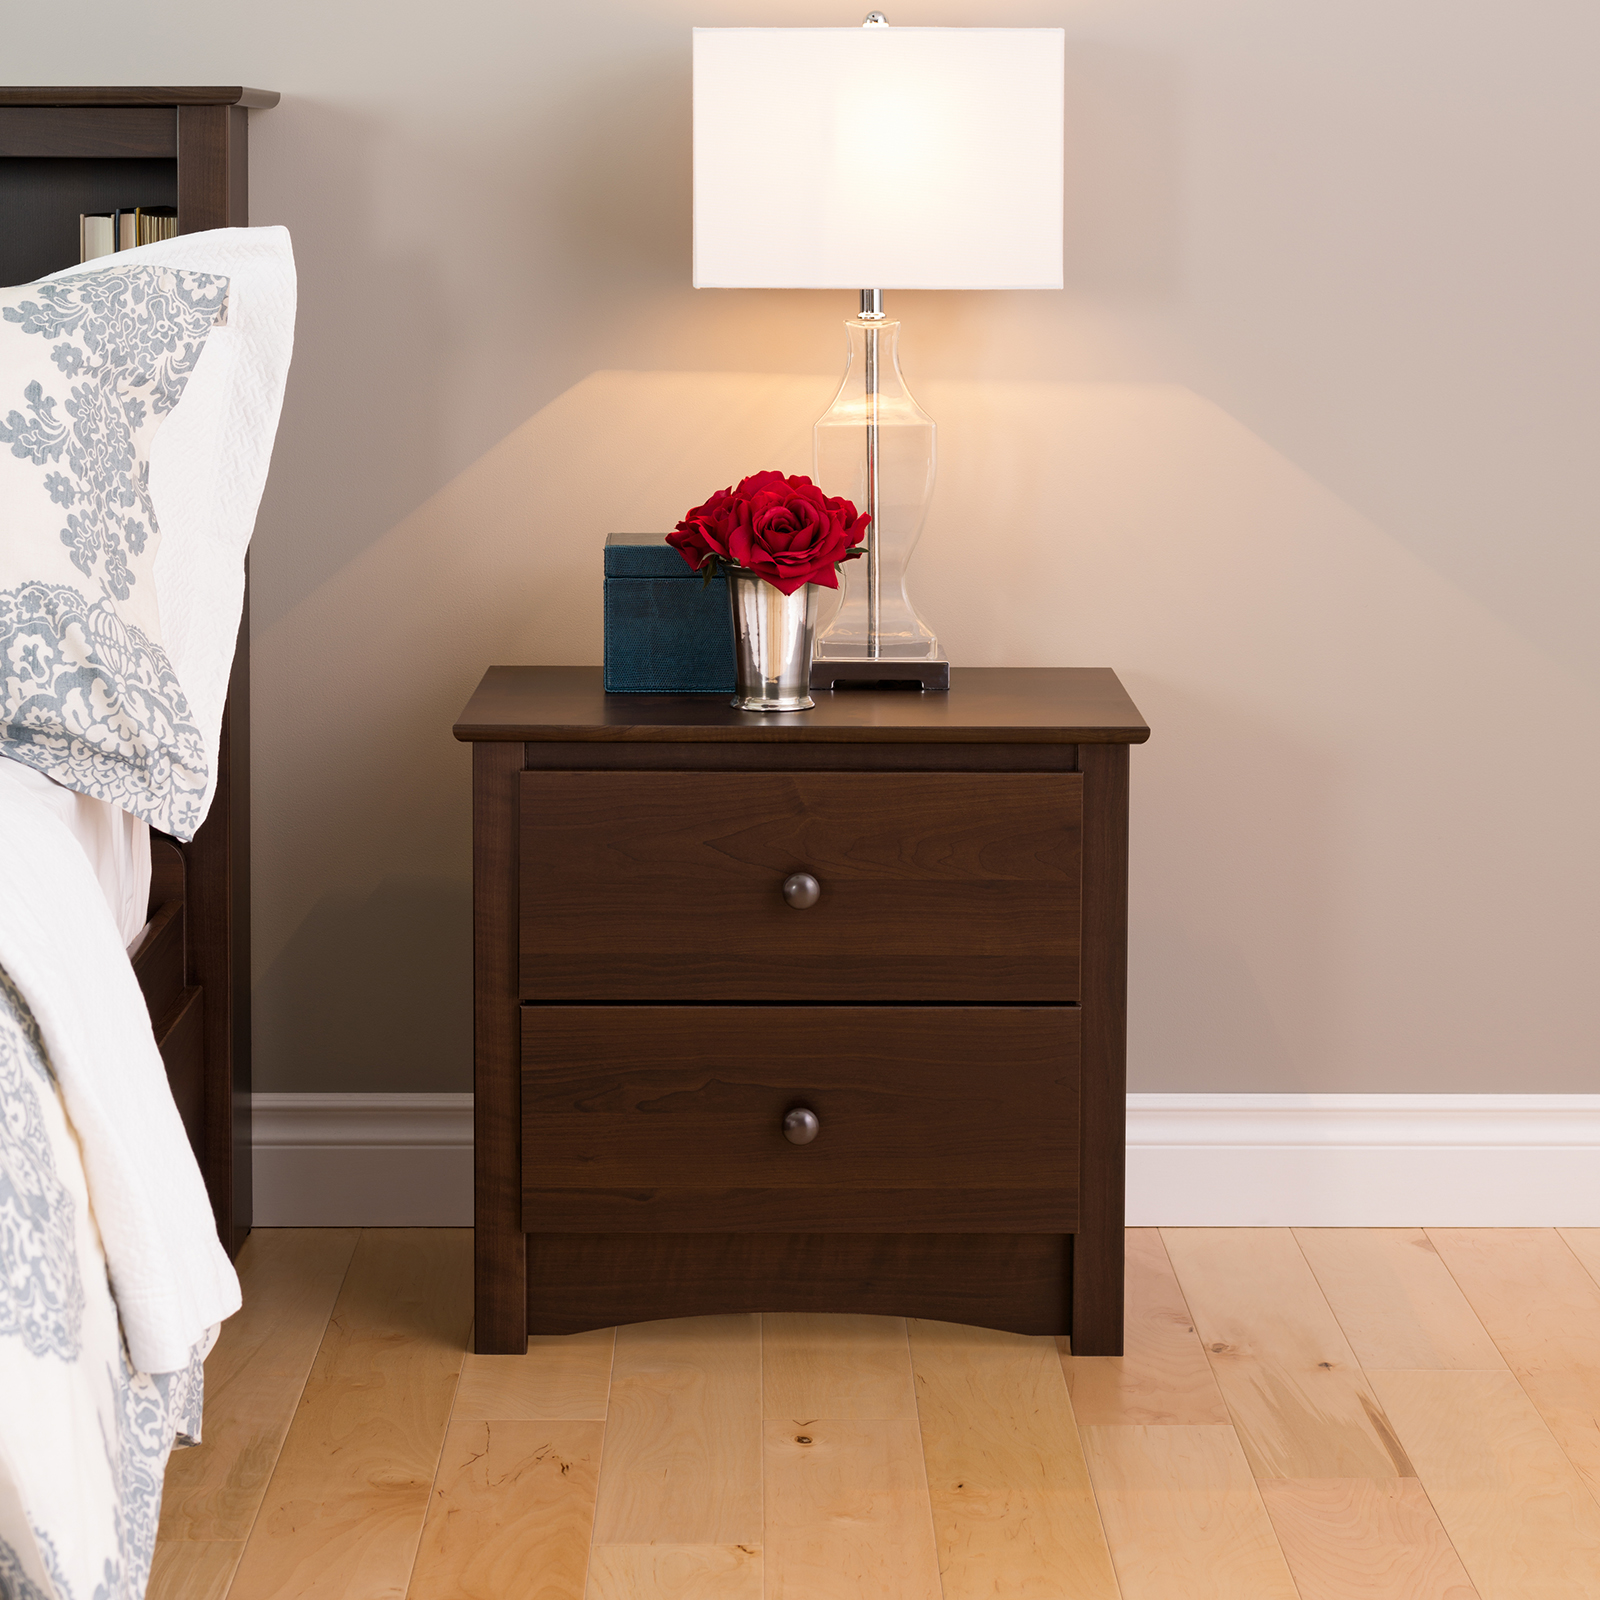 prepac fremont drawer tall night stand with open shelf  - prepac fremont drawer tall night stand with open shelf  espresso hayneedle